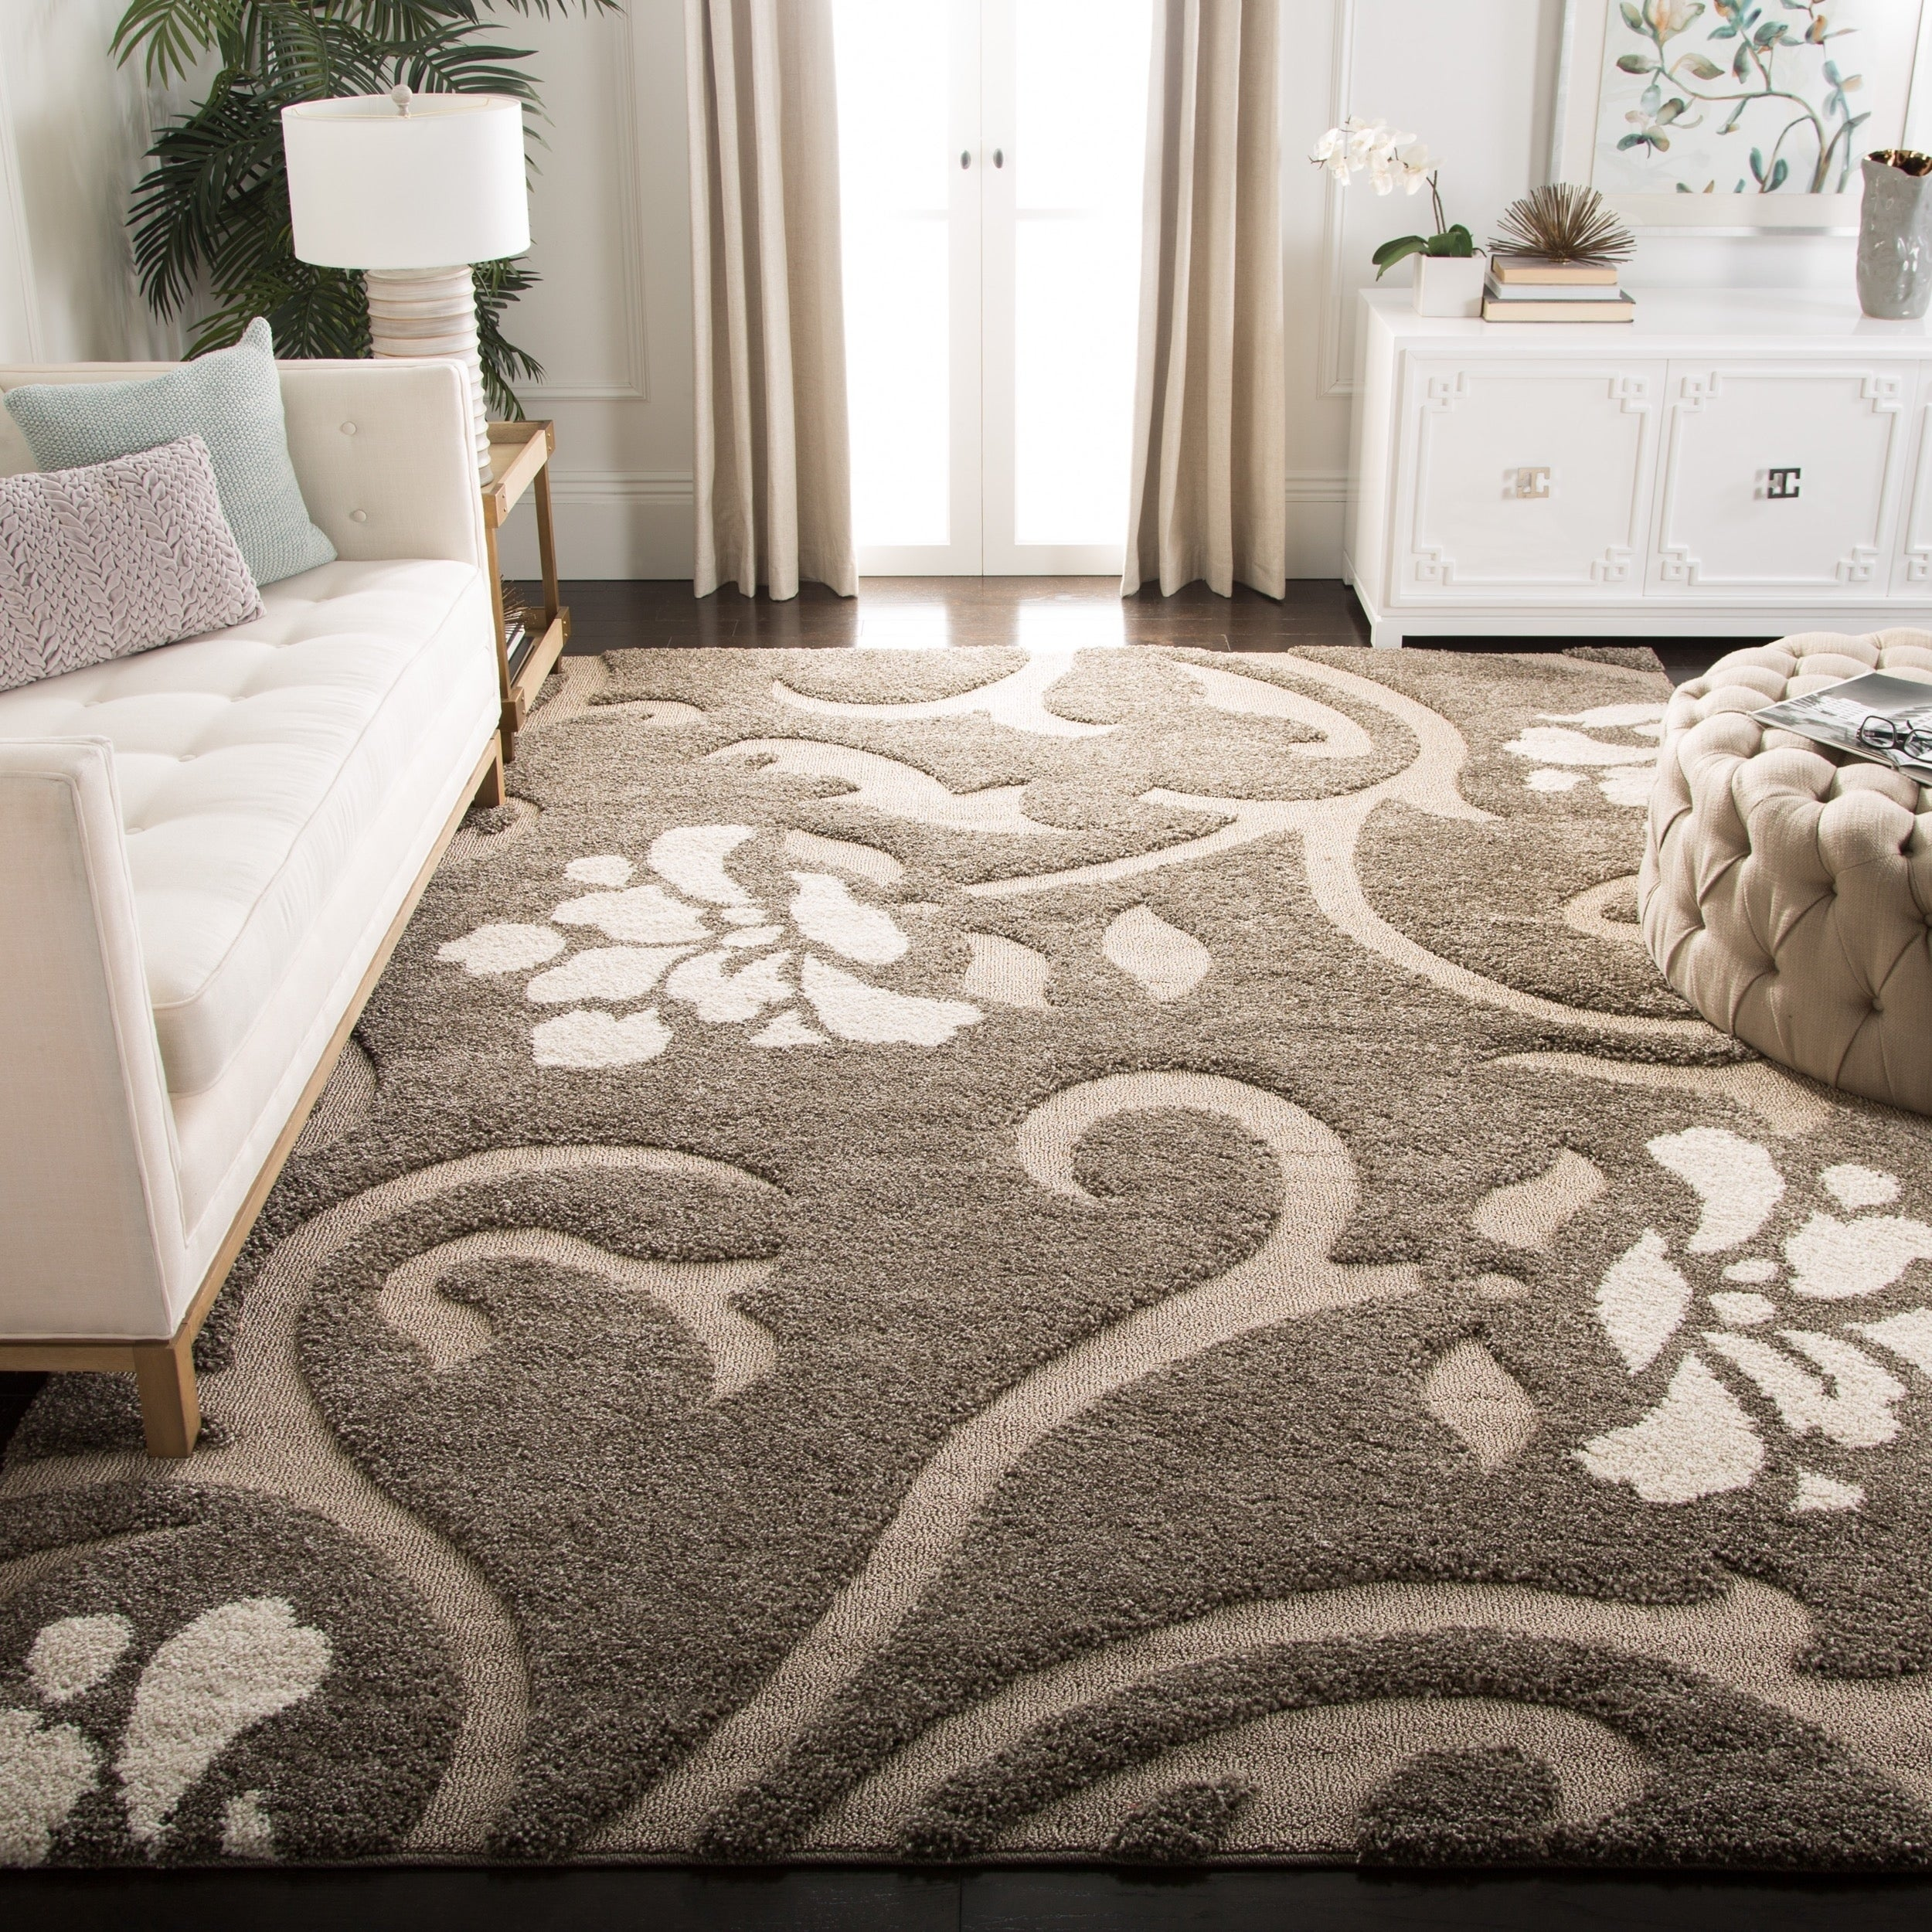 Unique Modern Shag Rug from Overstock.com